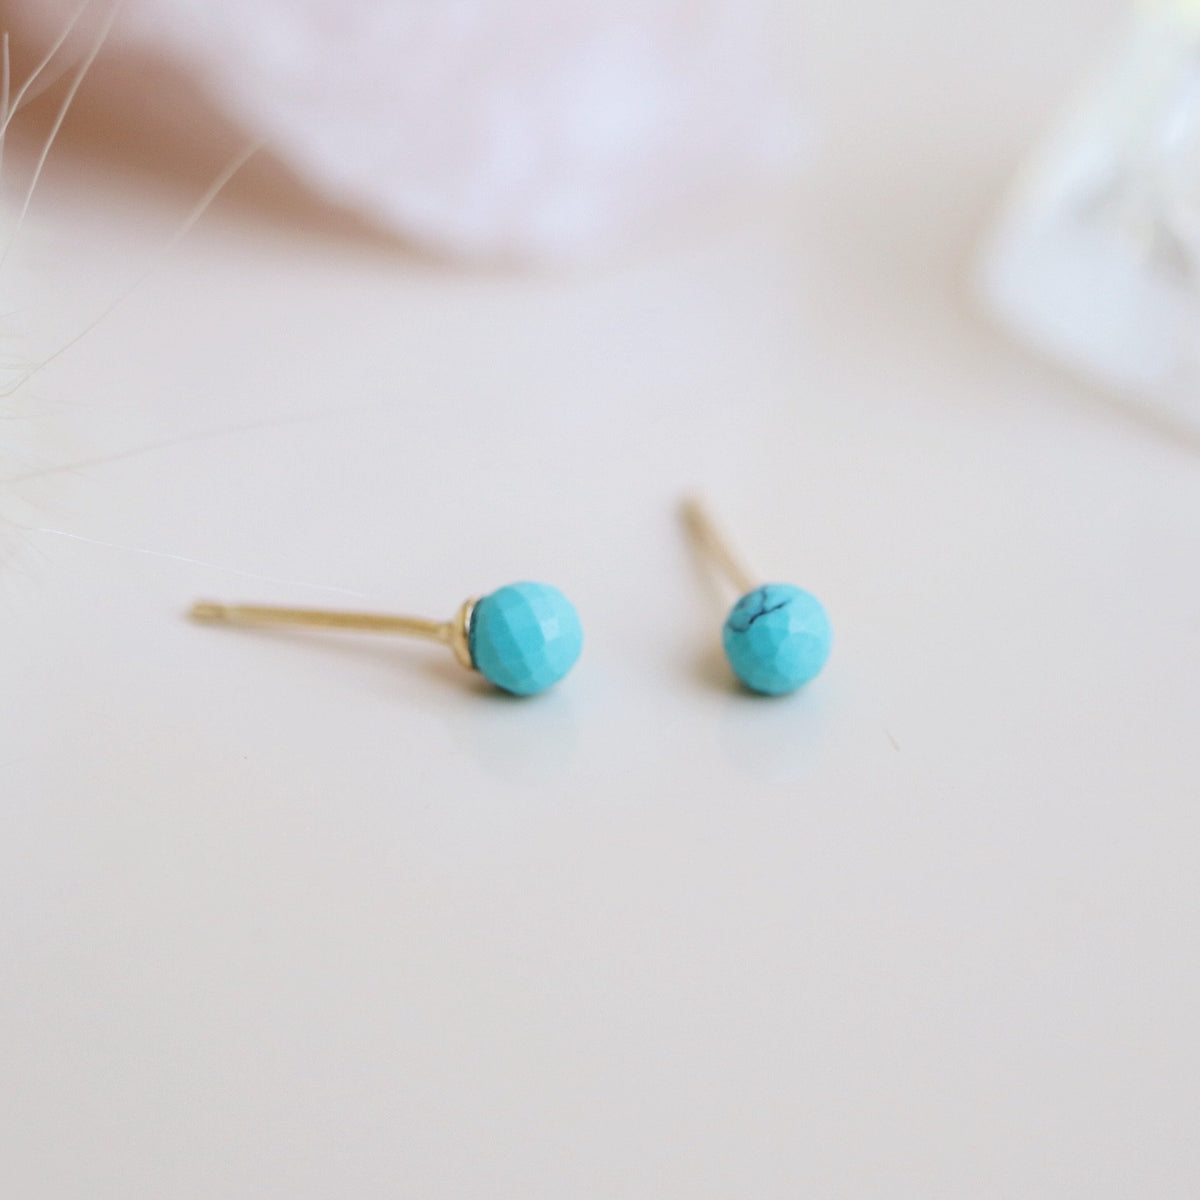 TINY PROTECT STUD EARRINGS - TURQUOISE & GOLD - SO PRETTY CARA COTTER